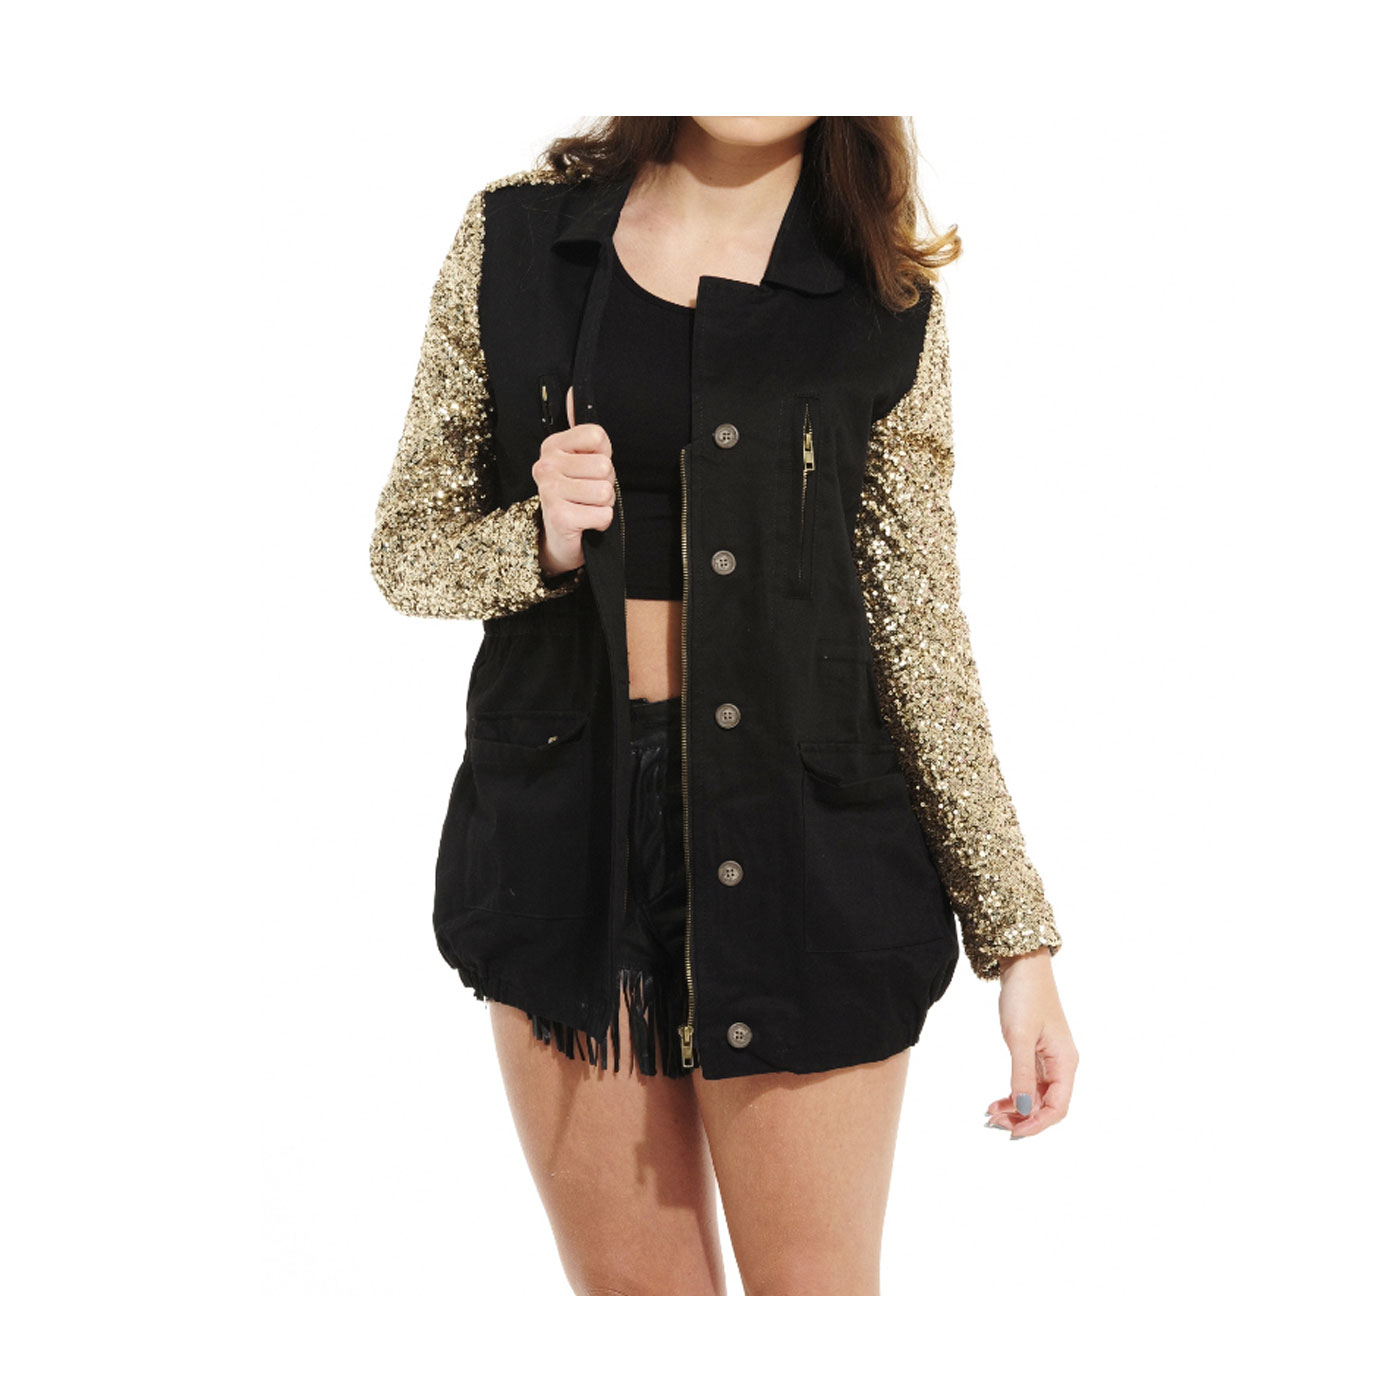 Ladies Womens Contrast Sequin Sleeve Army Military Style Parka